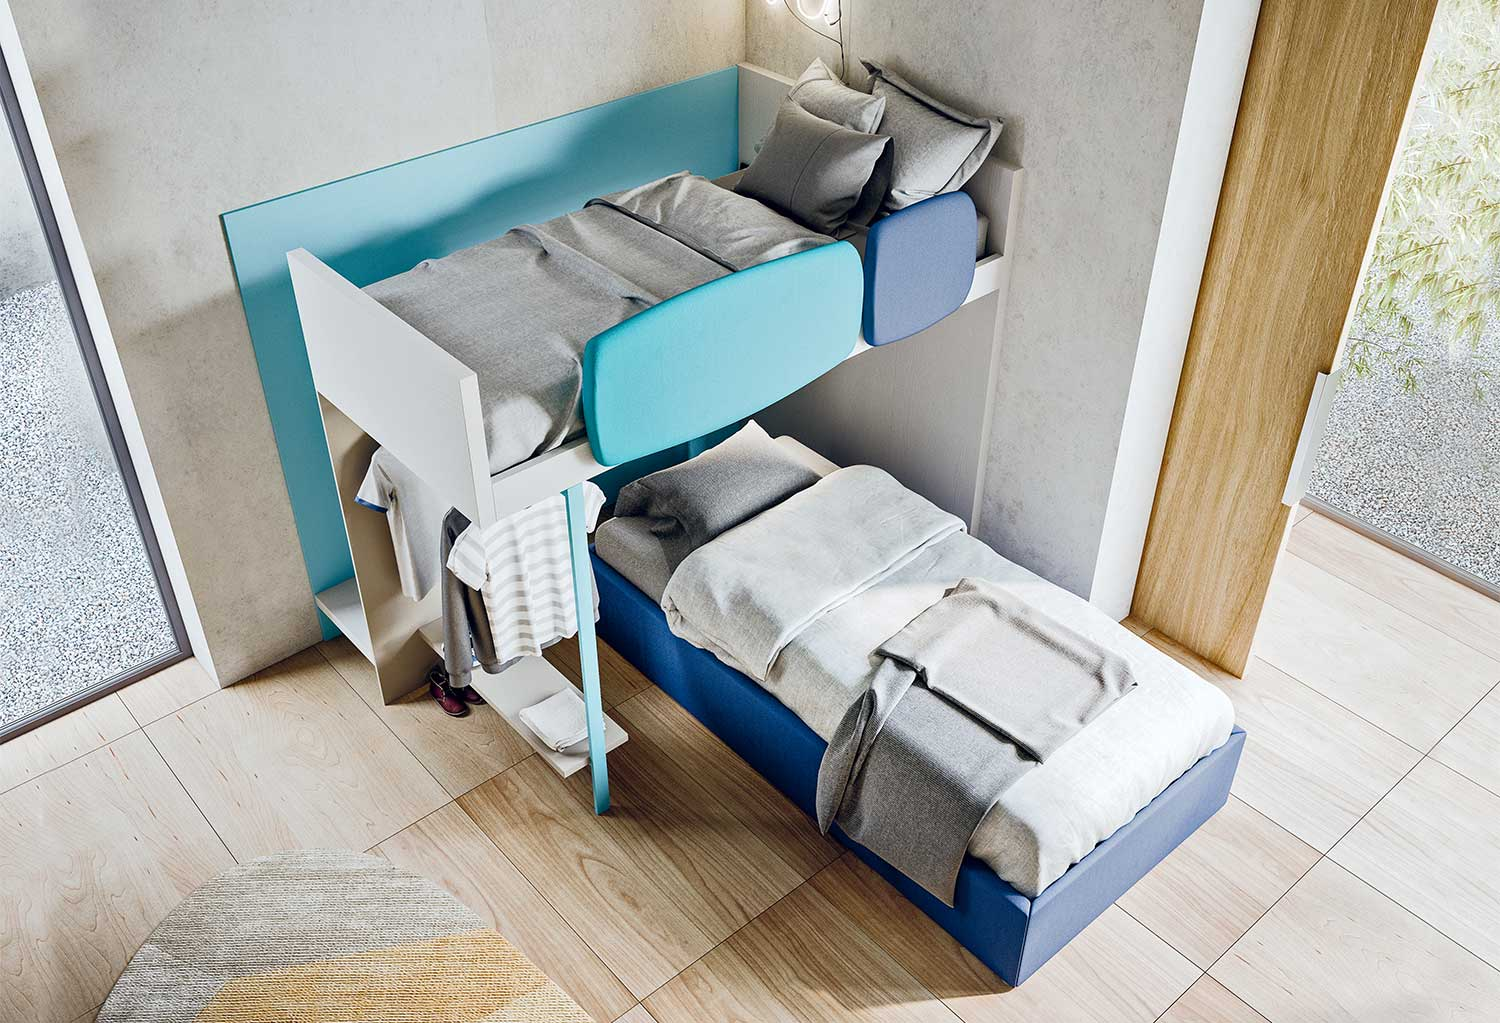 The high sleeper bed features two upholstered guard rails